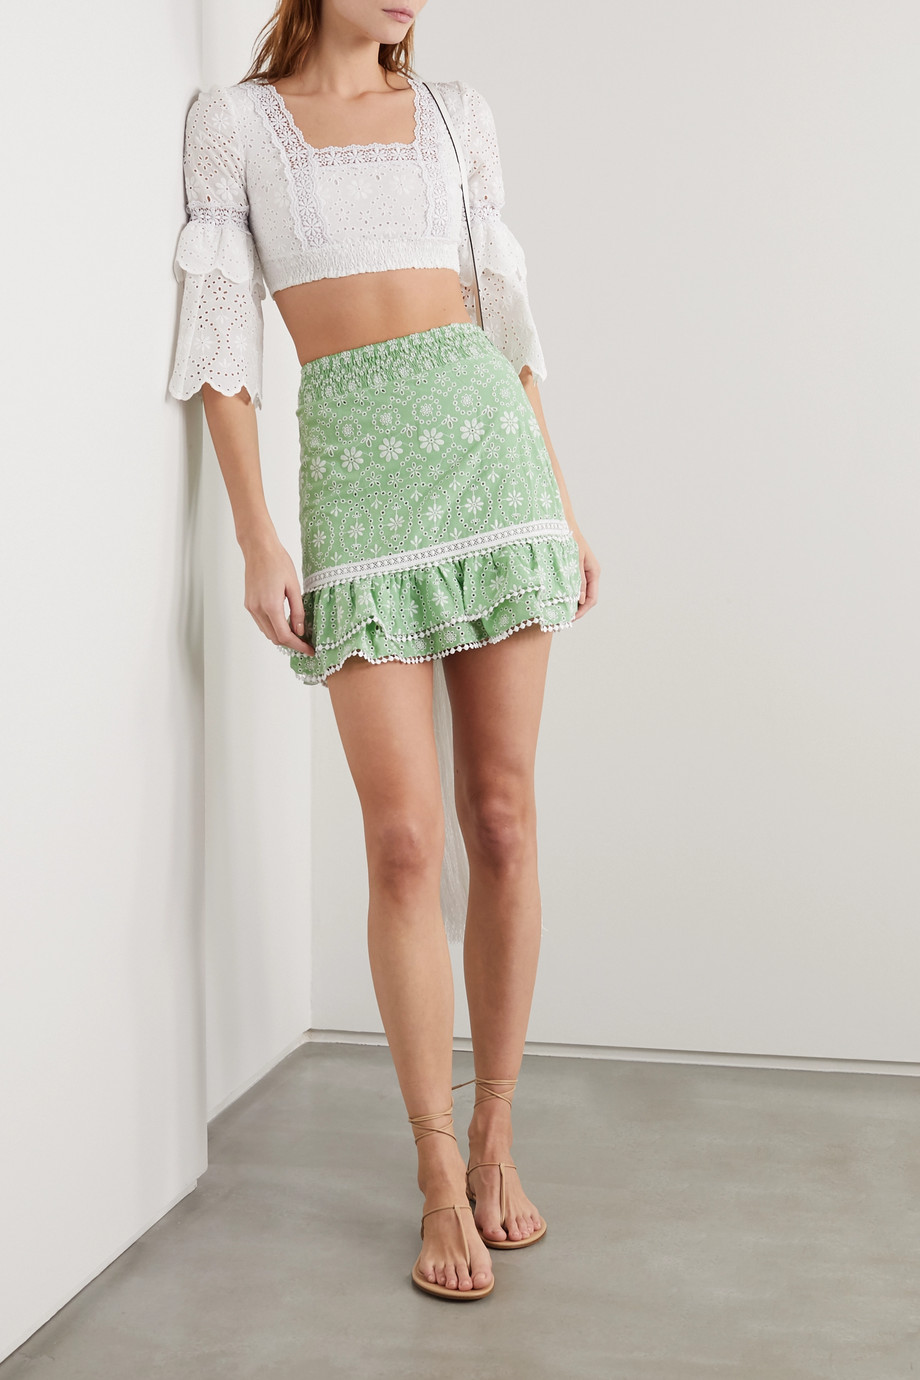 Charo Ruiz Humy crocheted lace-trimmed broderie anglaise cotton-blend mini skirt